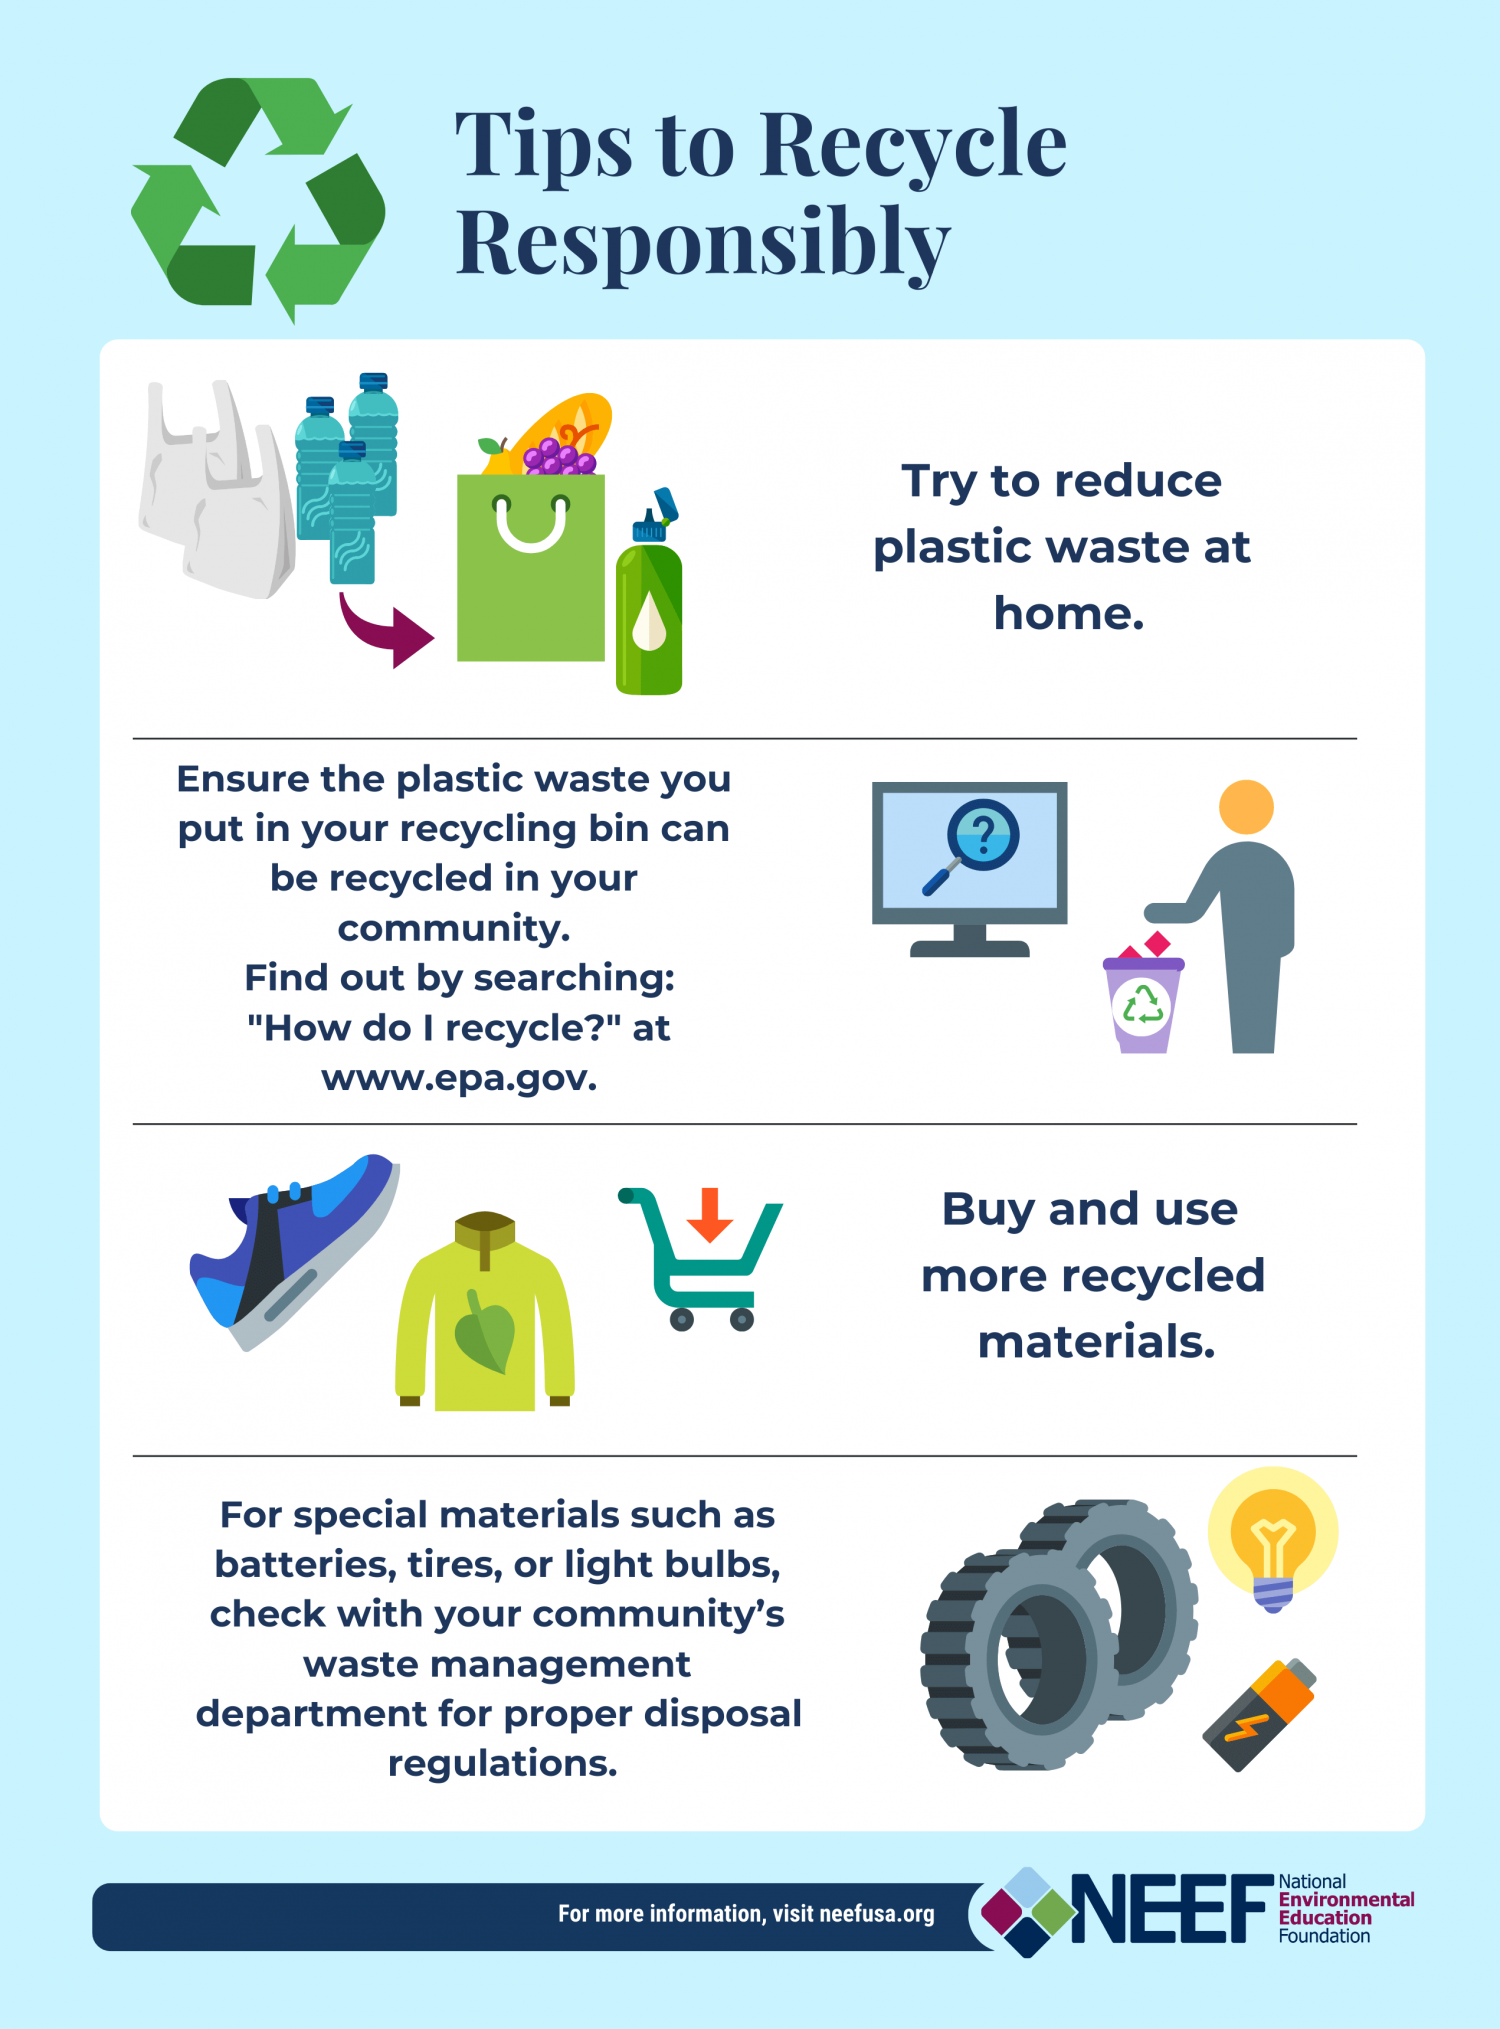 Tips to recycle responsibly graphic